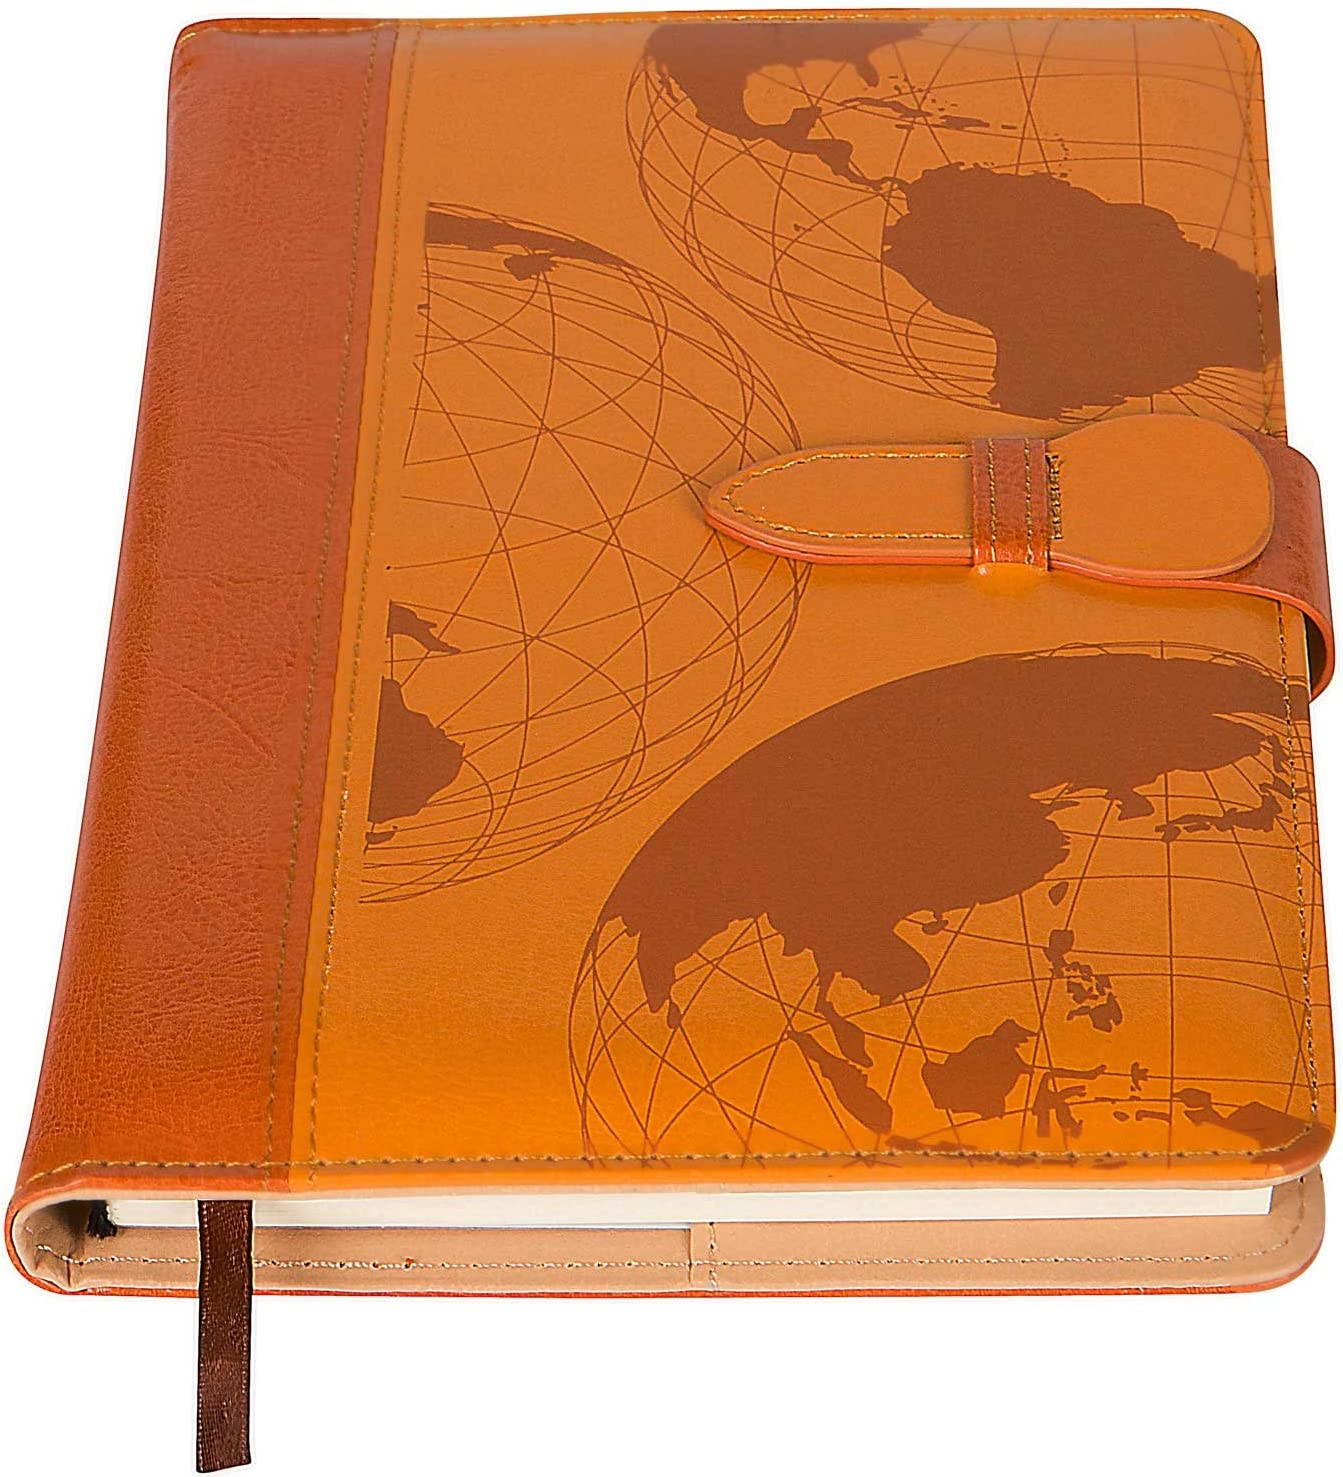 The World Map Refillable Writing Journal Notebook | Faux Leather Cover, Strong Clasp, 5 x 8 Inch, 200 Lined Pages, Travel, Diary, Quality Notebooks and Journals for Men and Women | The Amazing Office